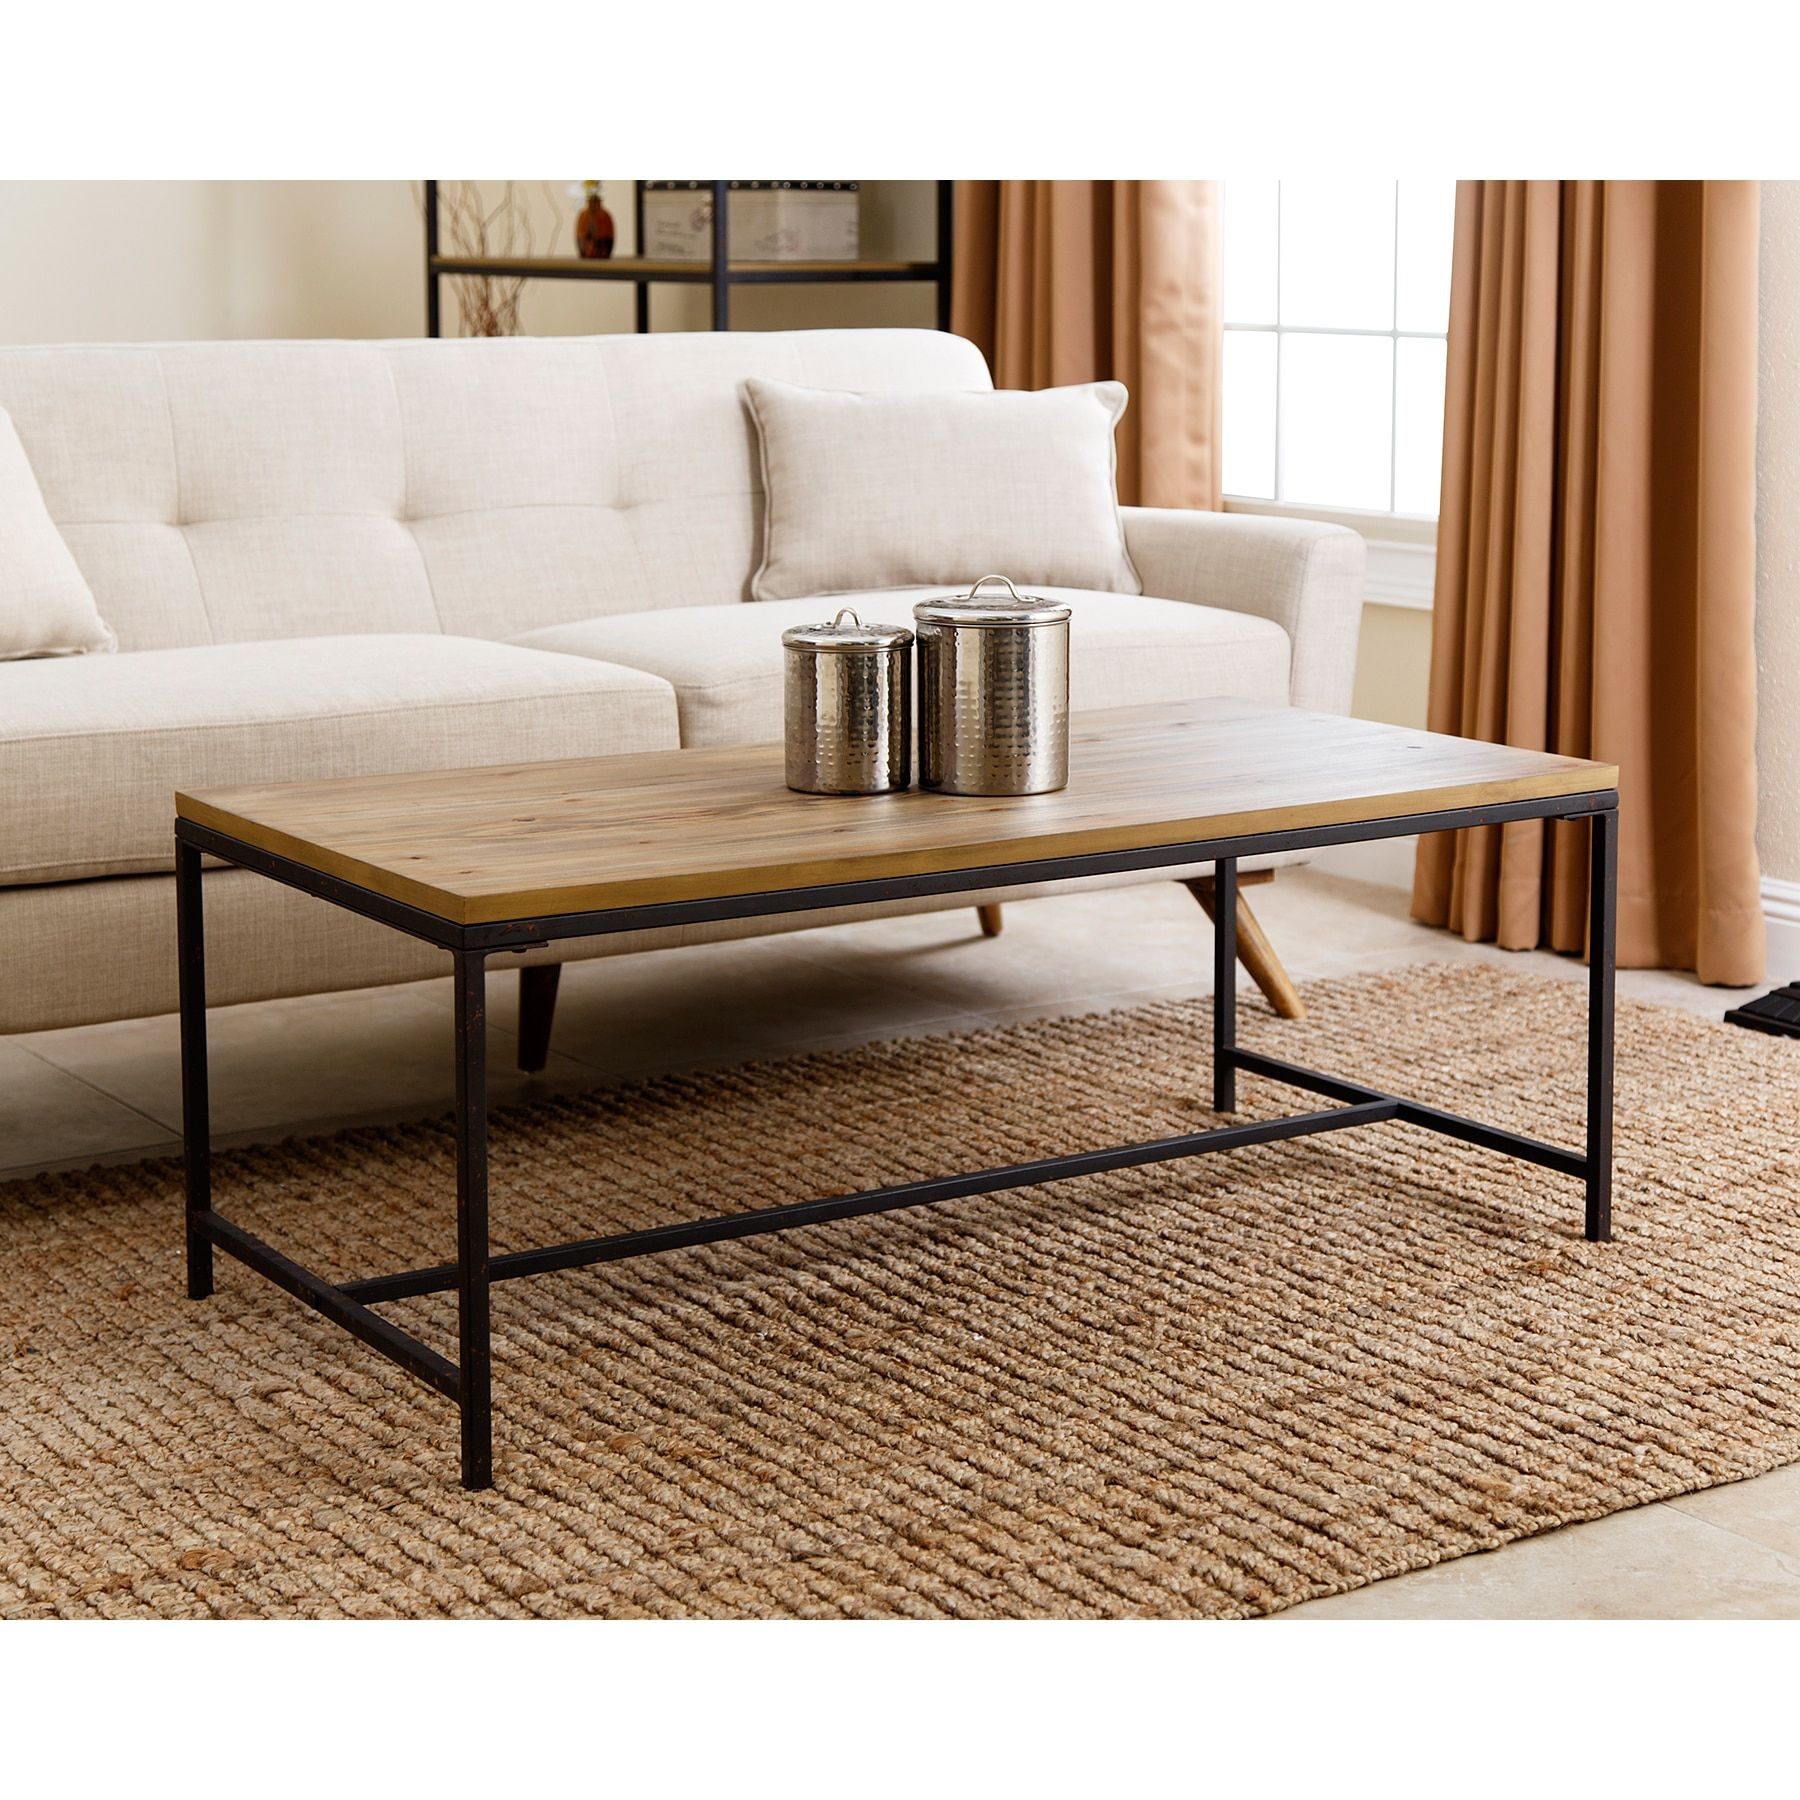 abbyson living black tan wood iron kirkwood industrial coffee table rh pinterest com